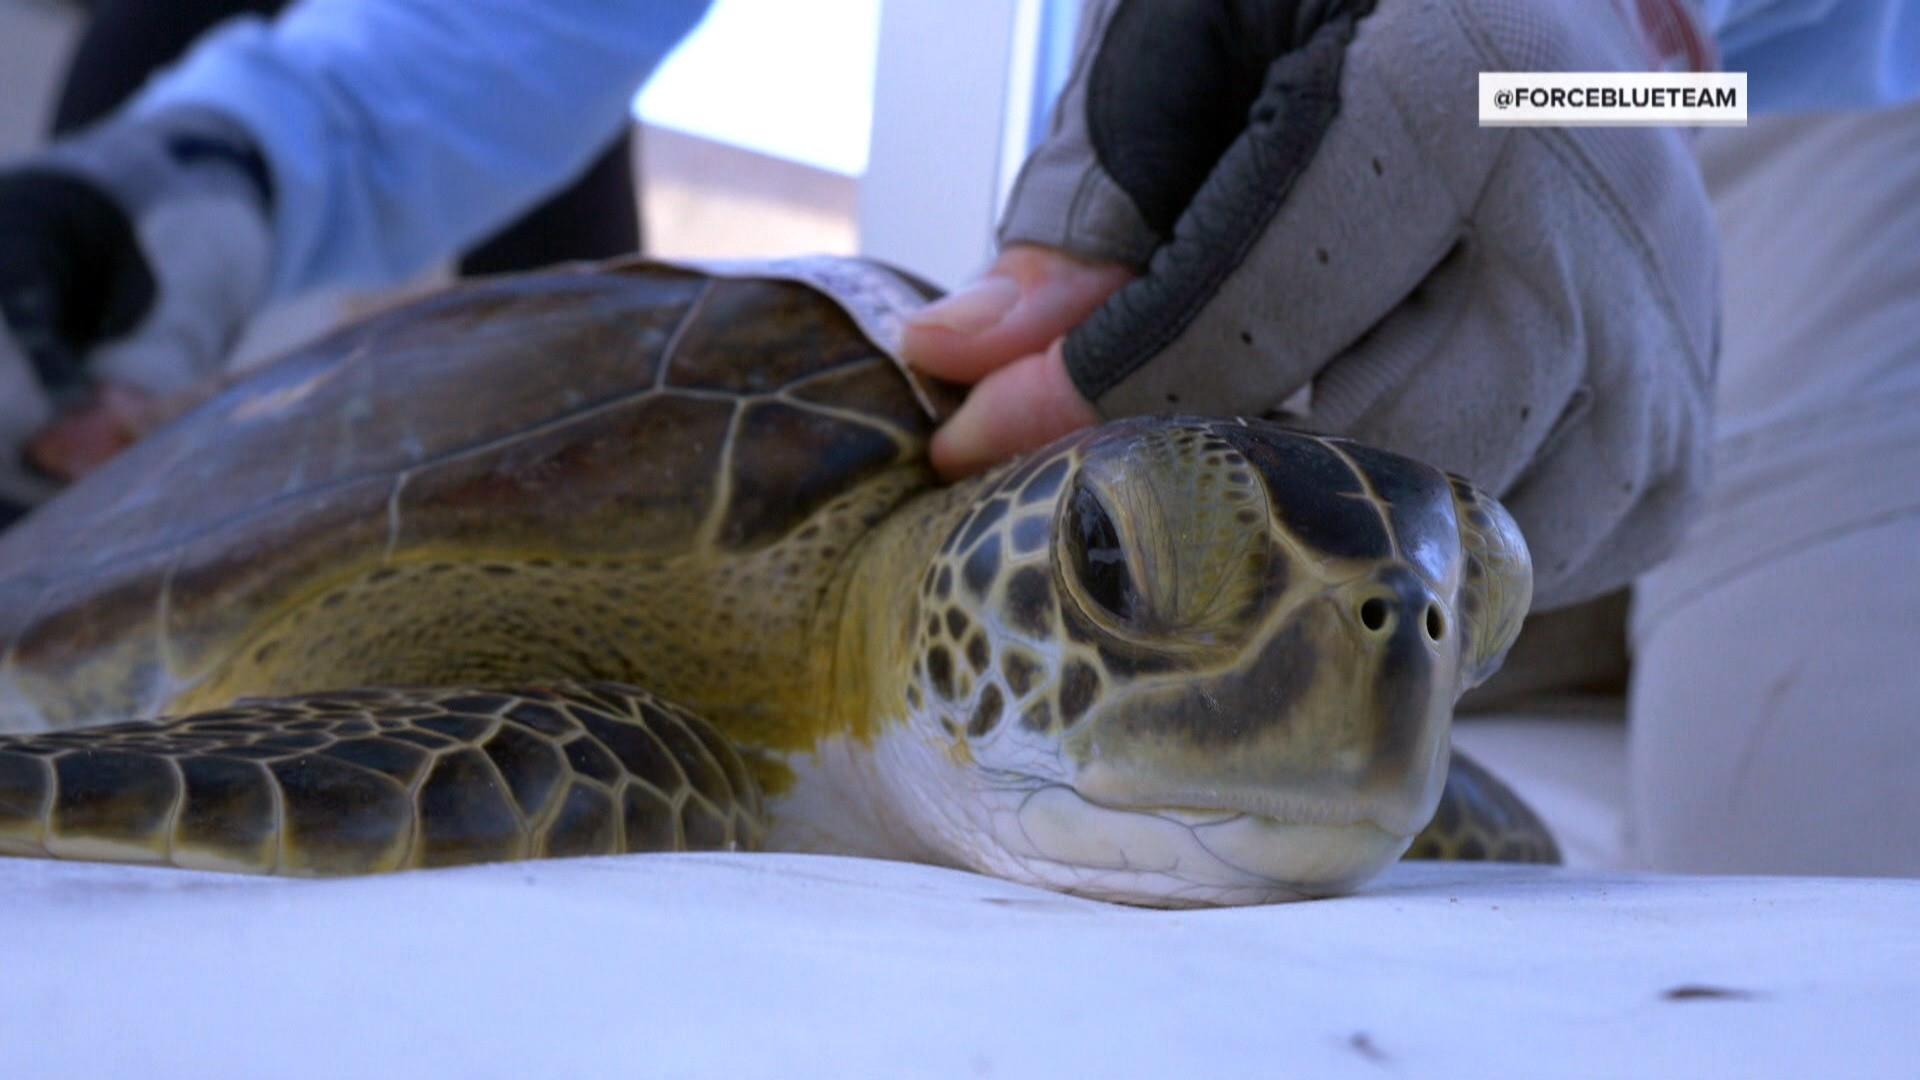 Marine scientists team up with combat veterans to save sea turtles